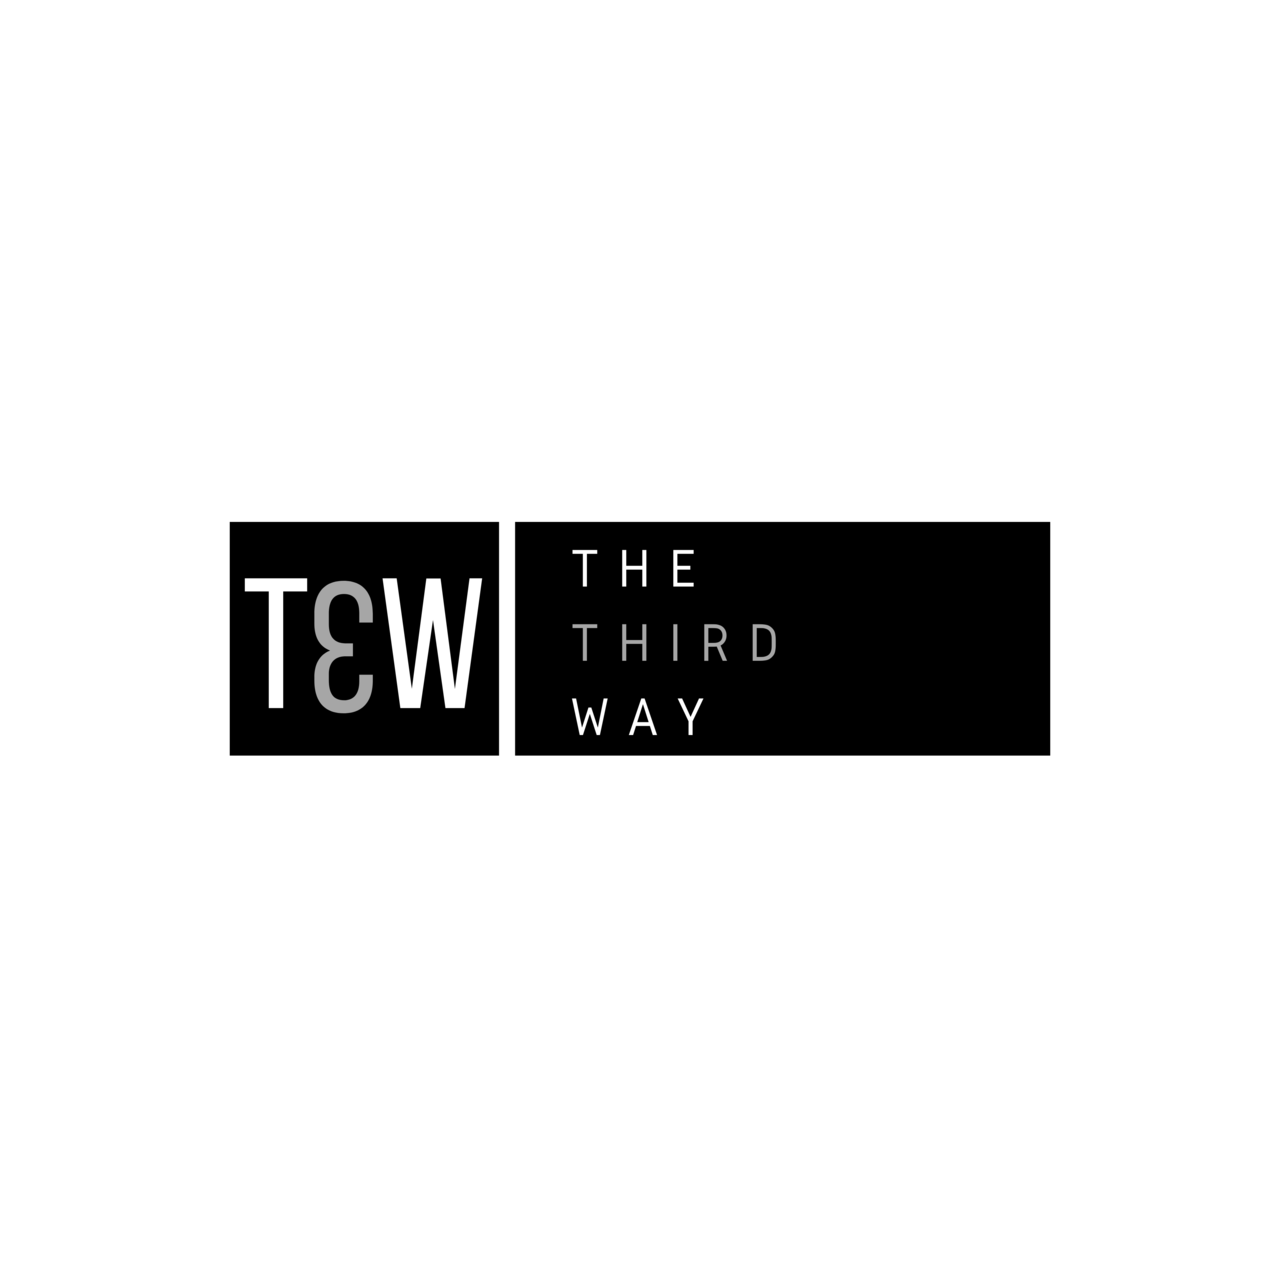 The Third Way by FosterThinking